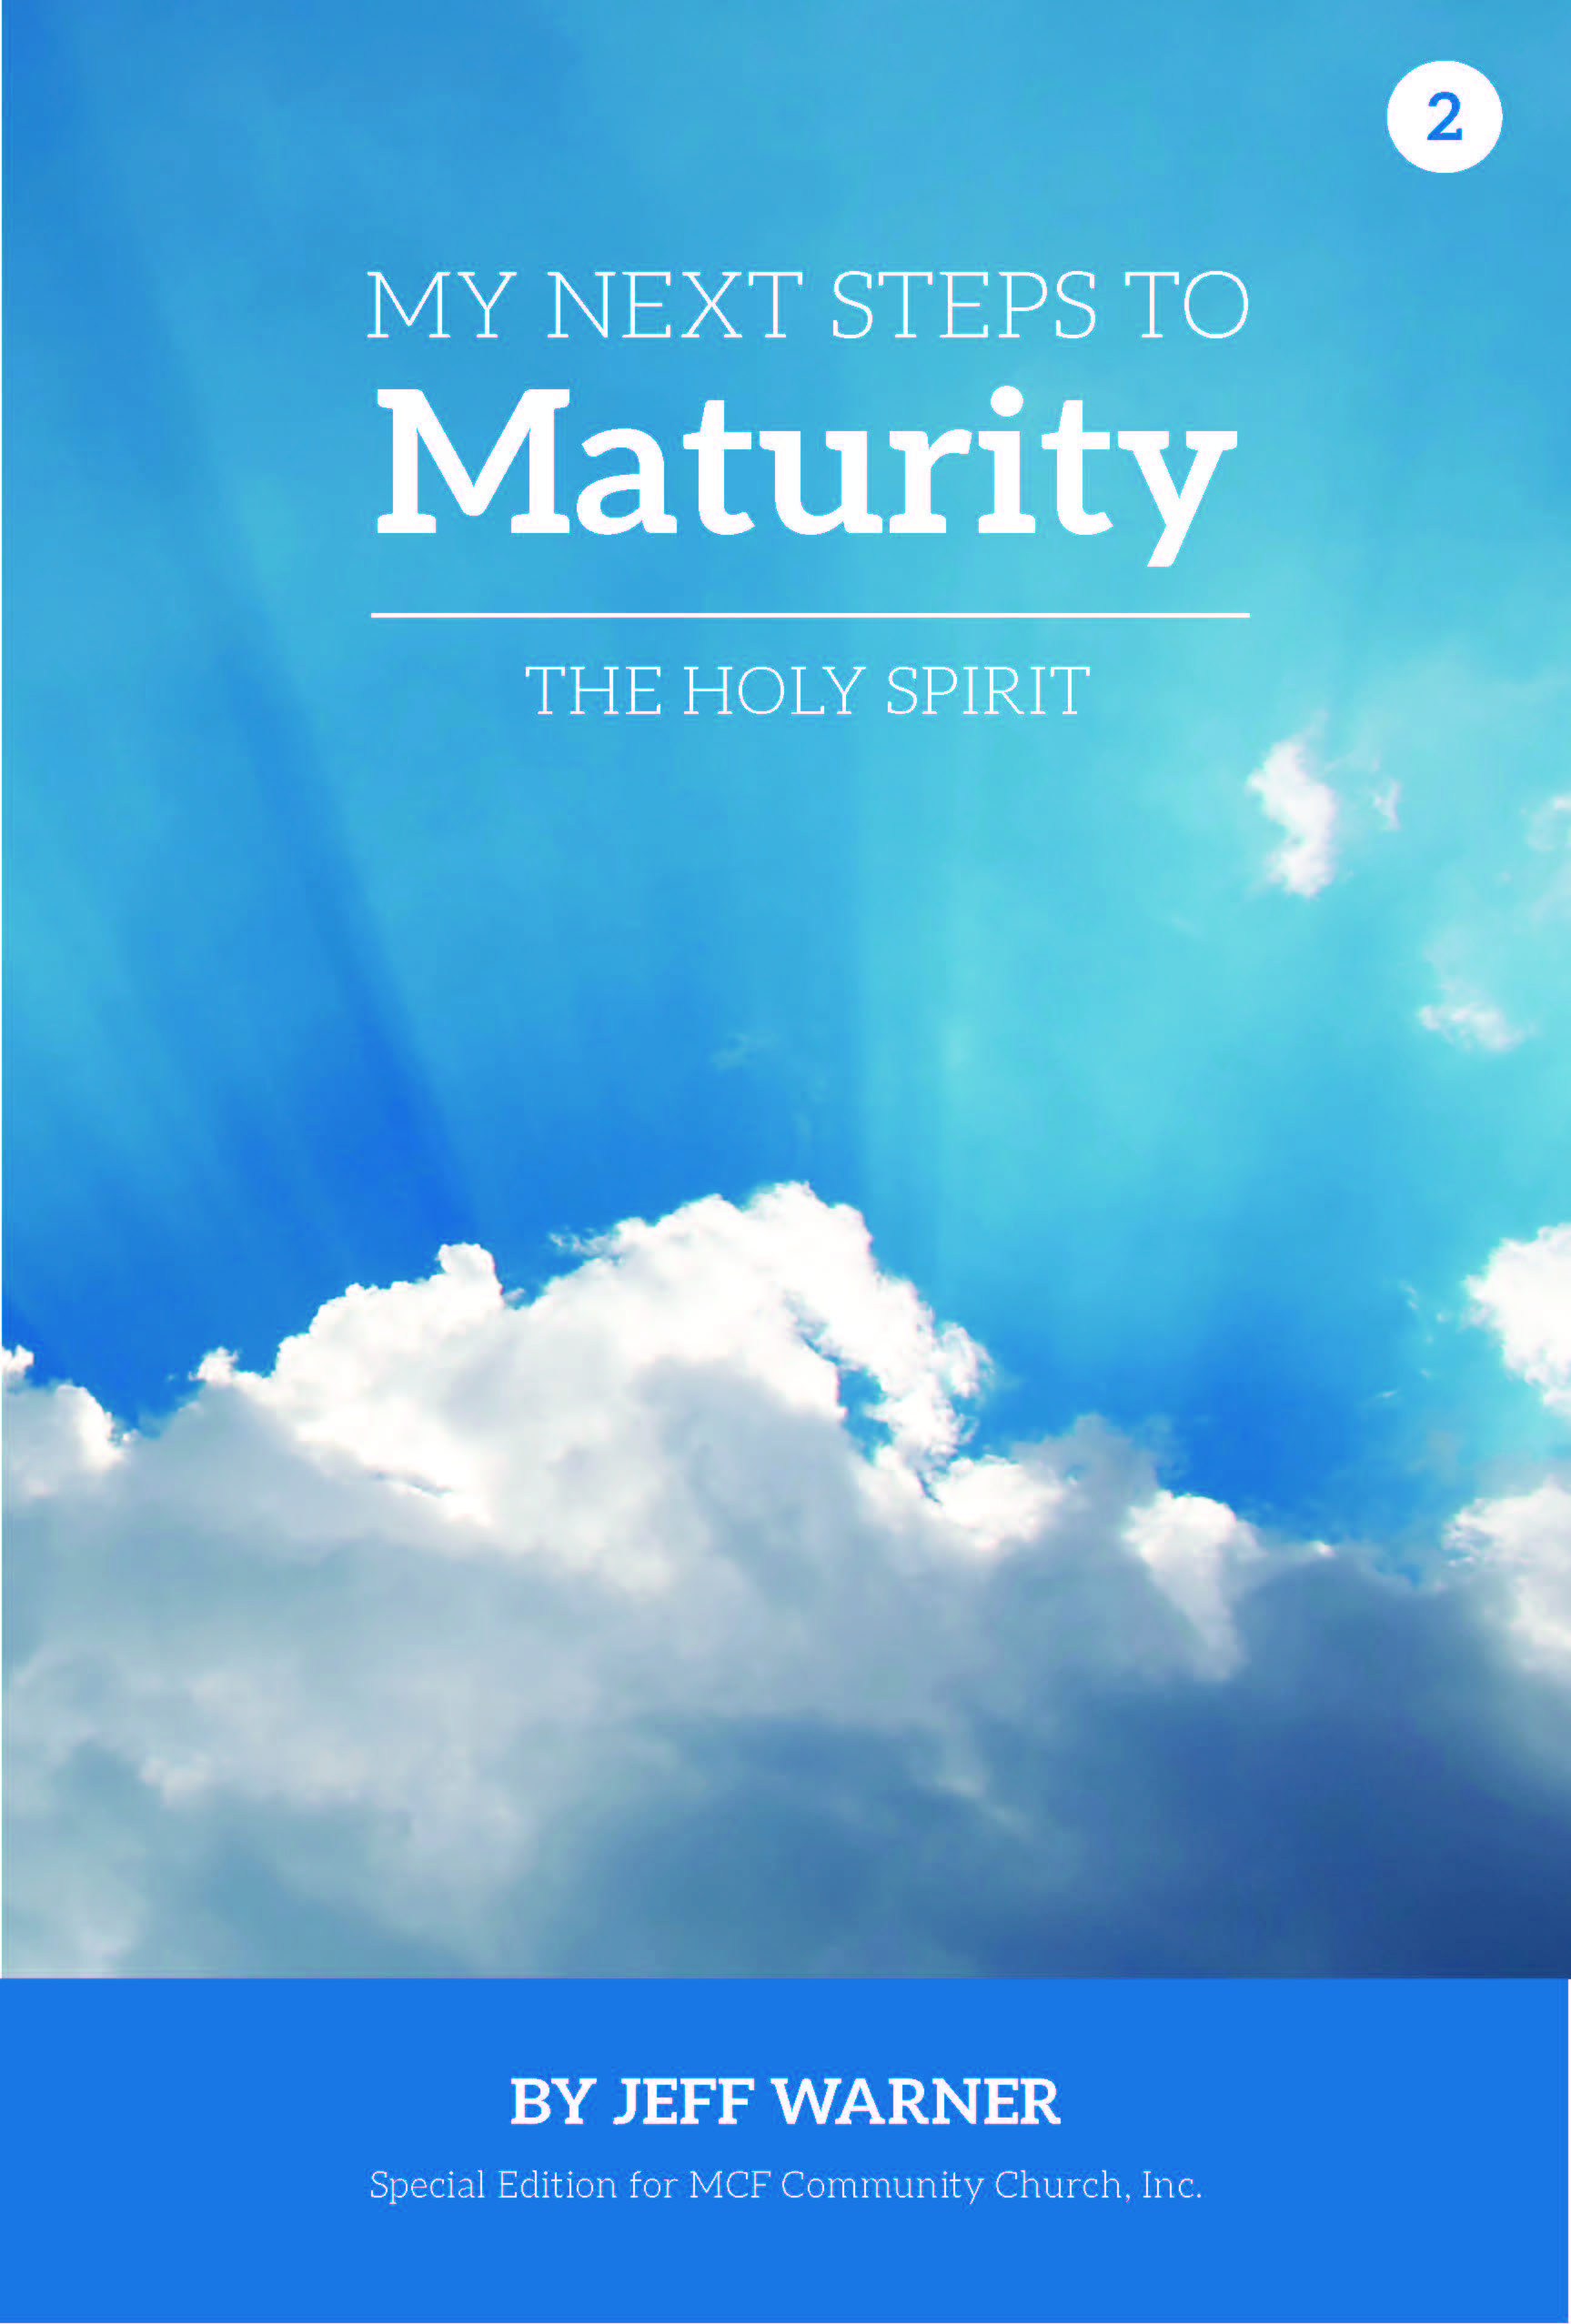 2-Maturity-Holy Spirit Cover-6Aug14.jpg